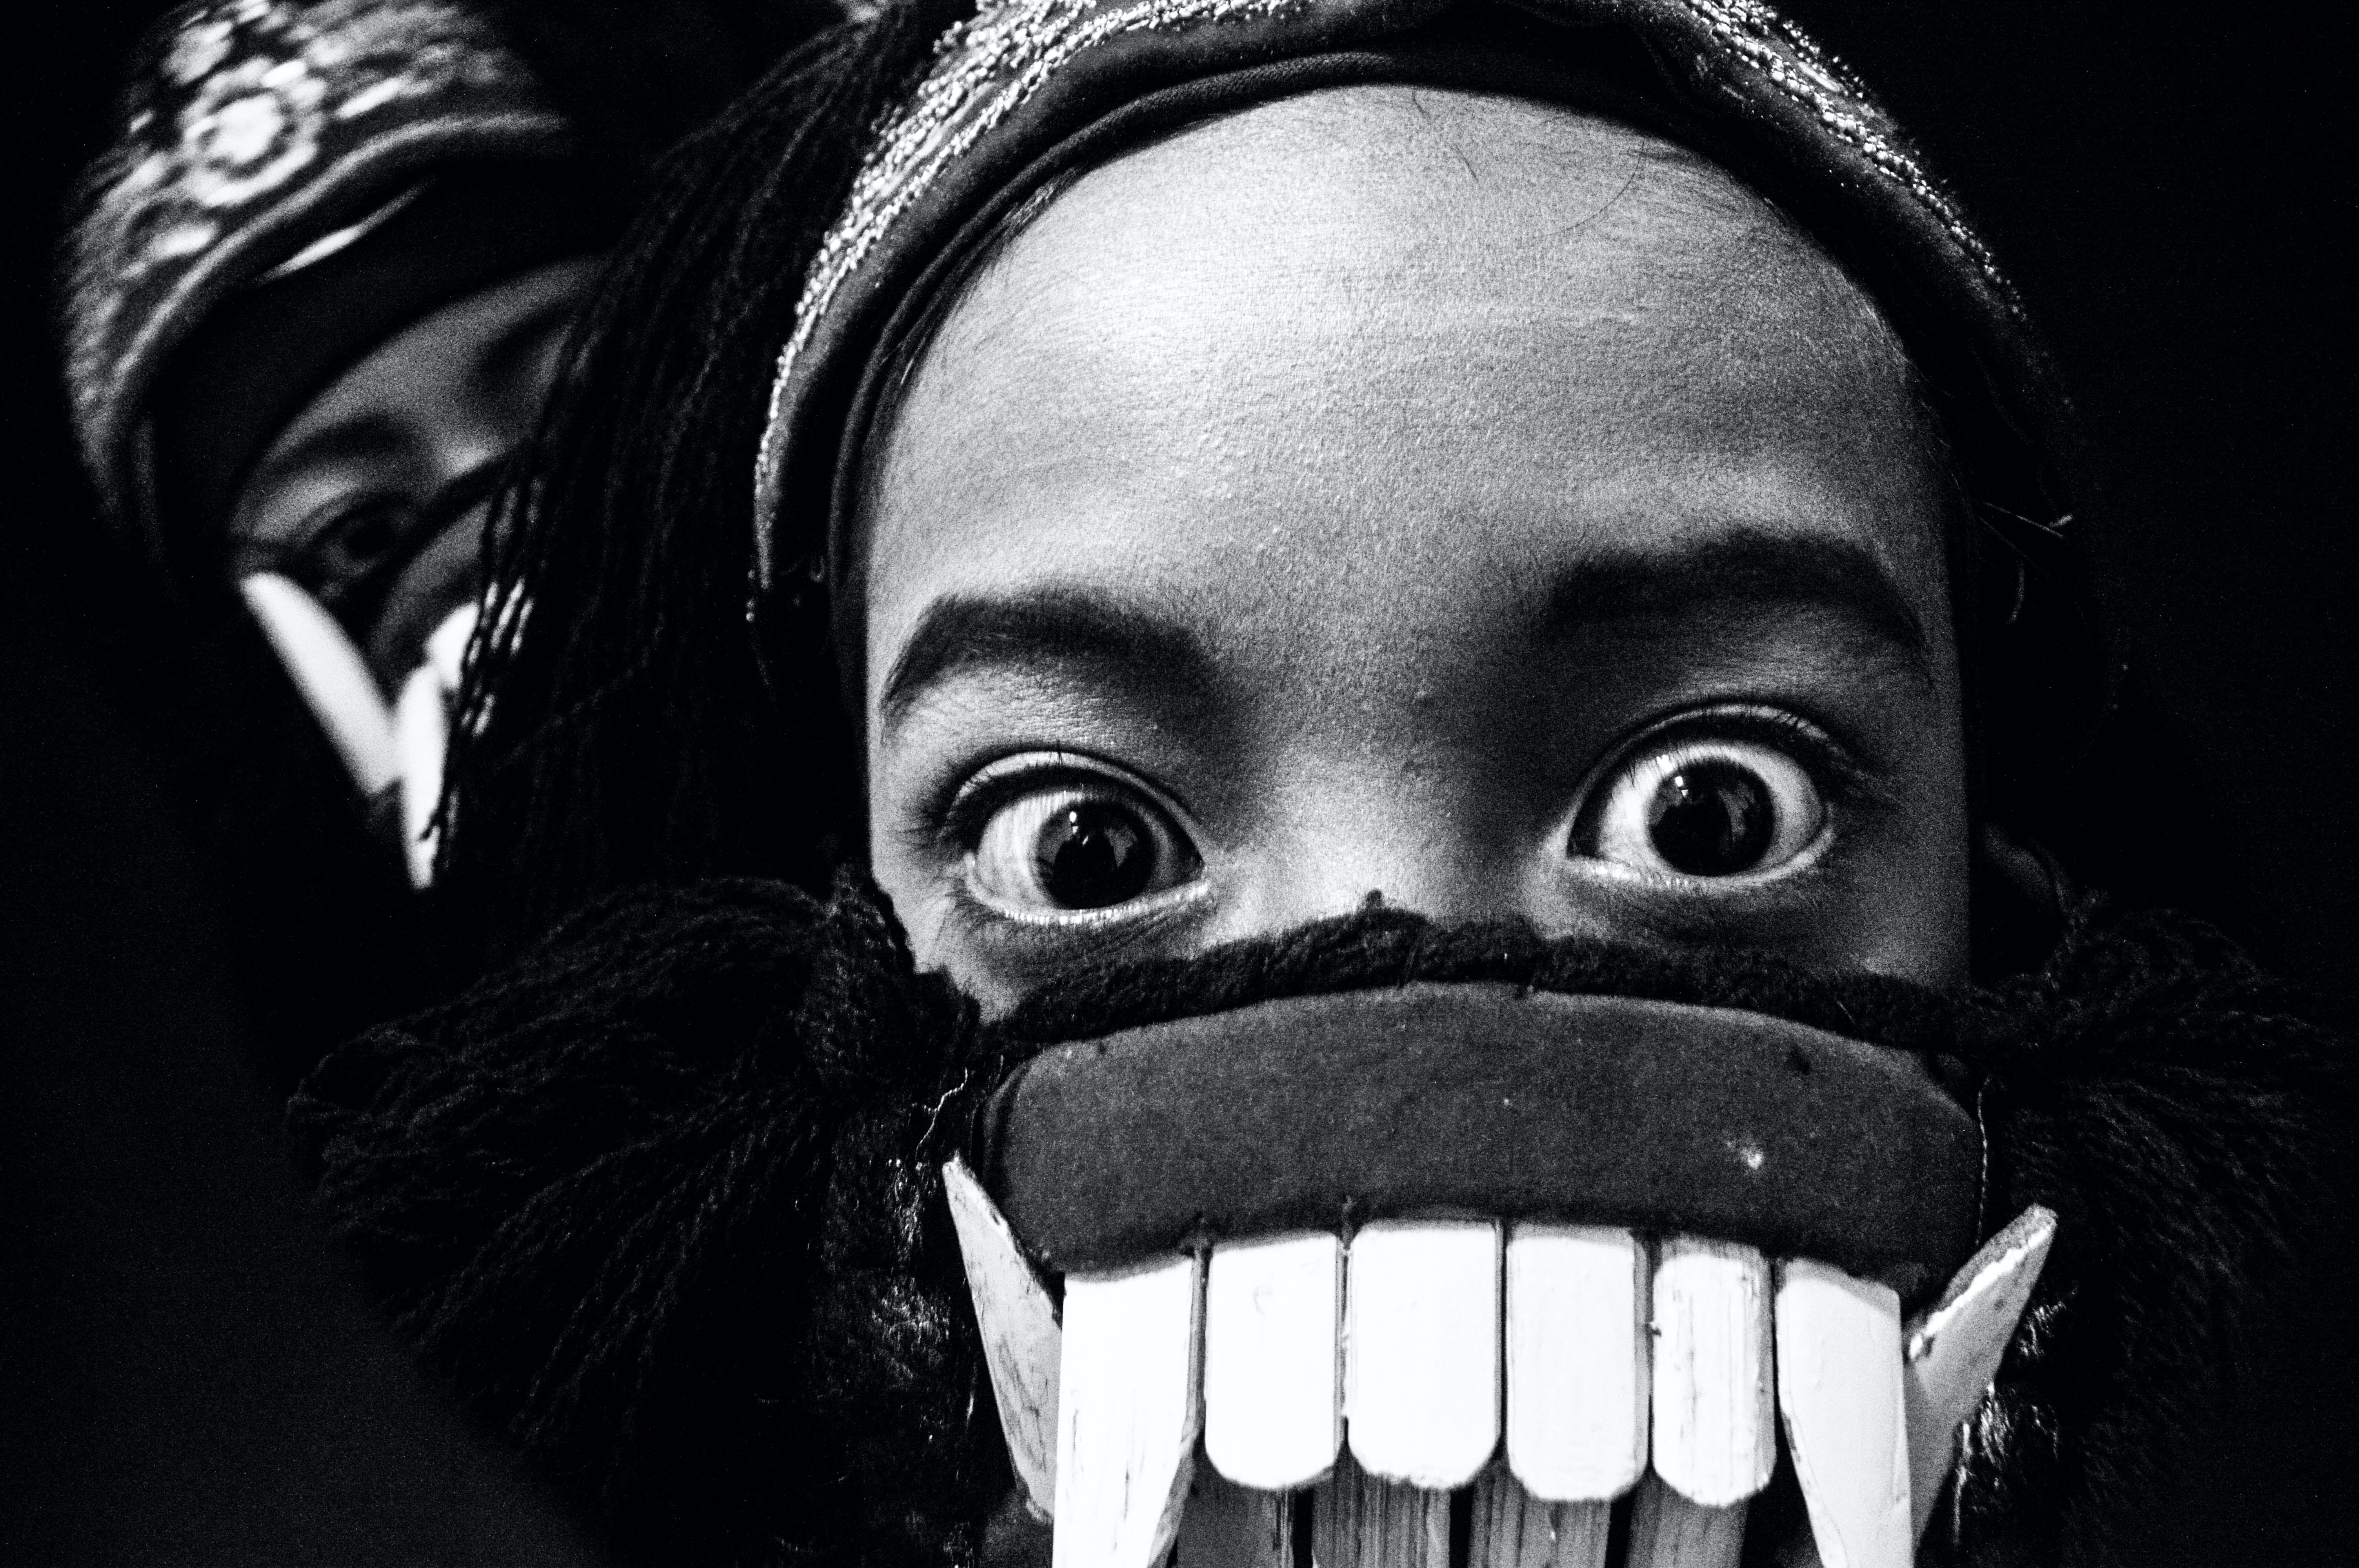 Grayscale Photo of Person in Mask Taking Selfie